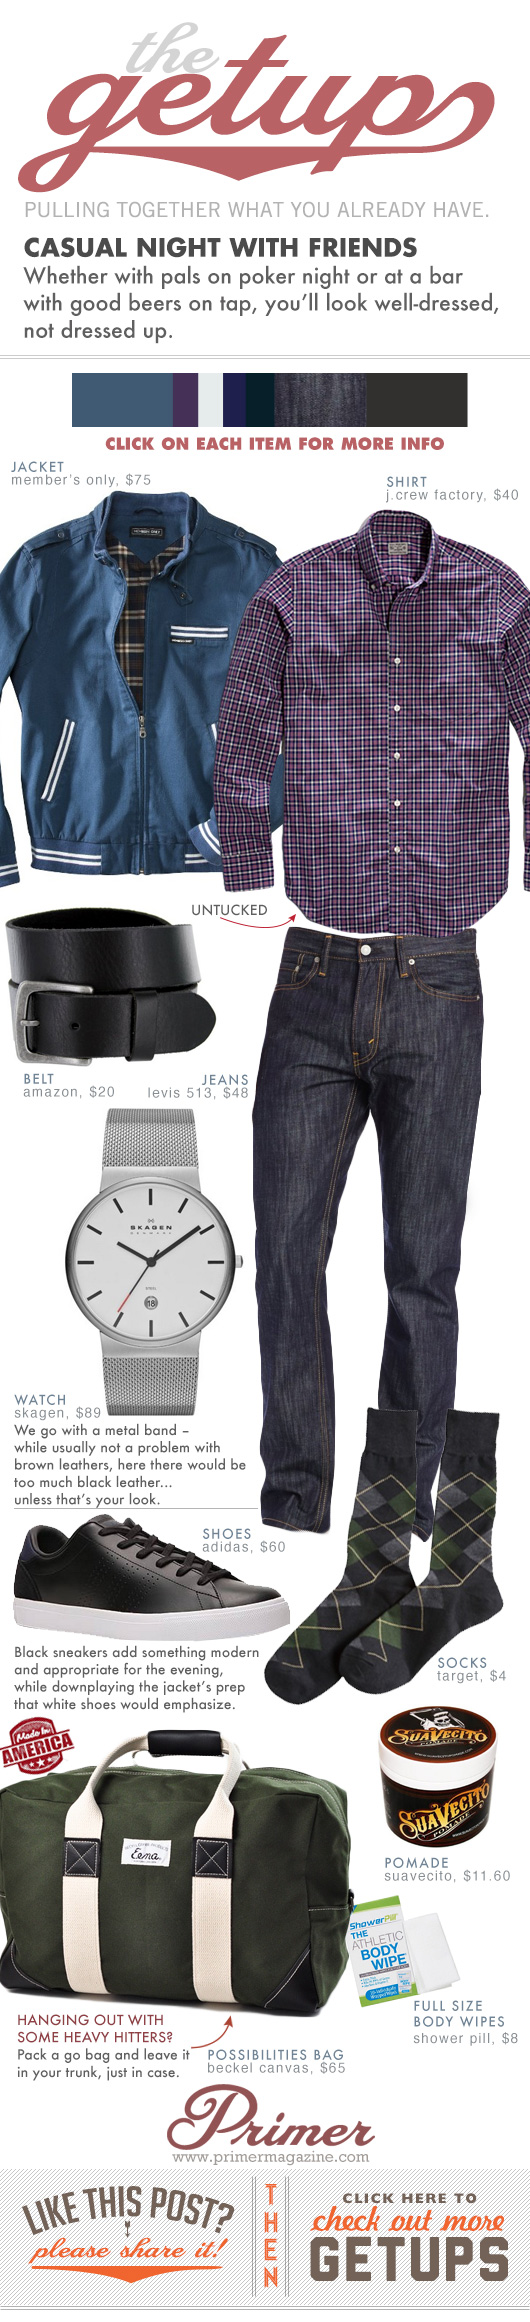 Getup Casual Night with Friends - Purple check shirt, black belt, dark blue jeans